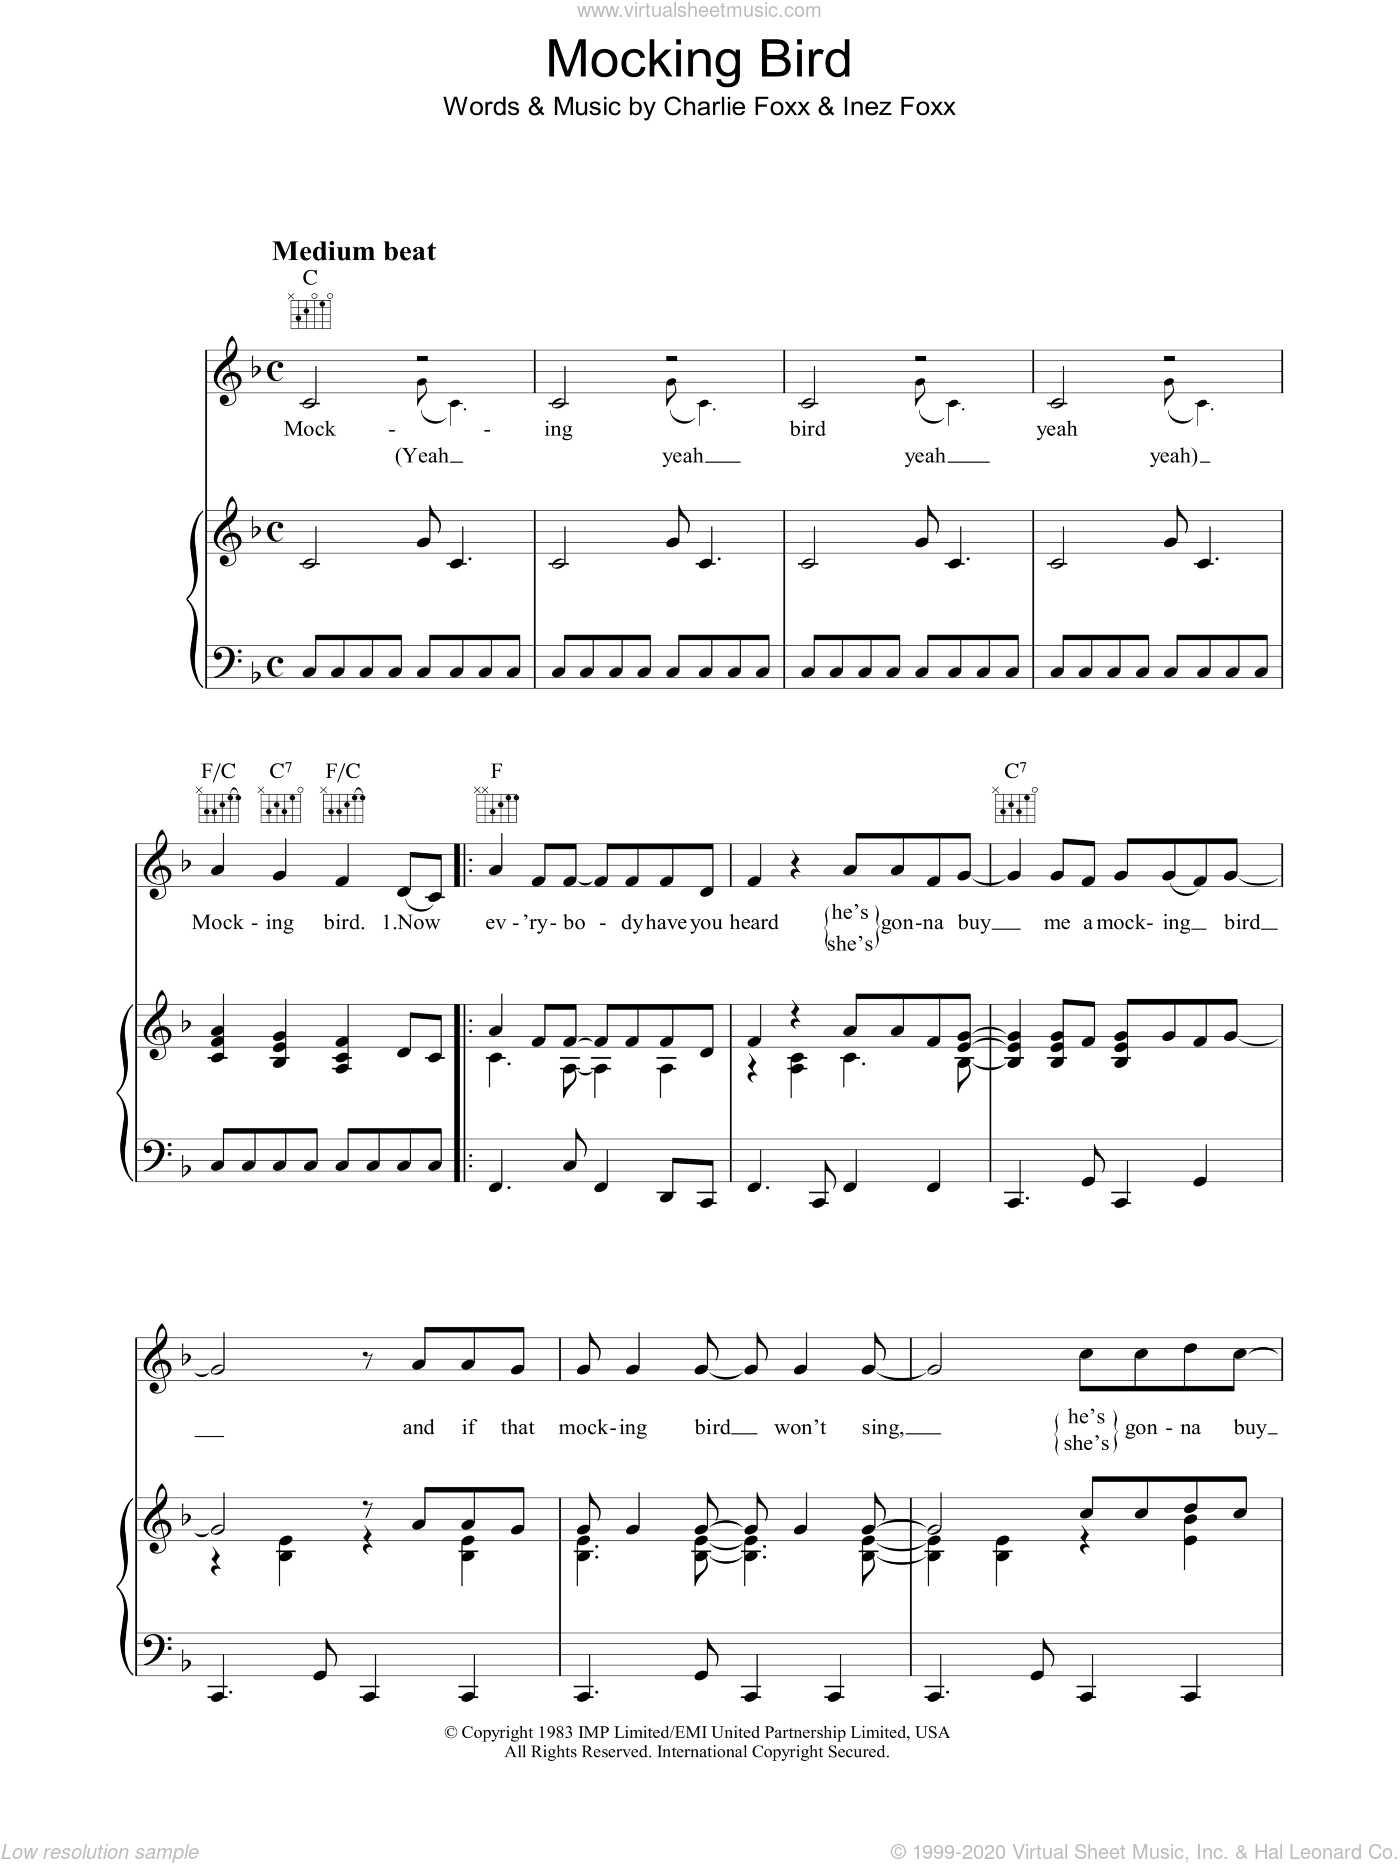 Mocking Bird sheet music for voice, piano or guitar by Charlie Foxx and Inez Foxx, intermediate skill level